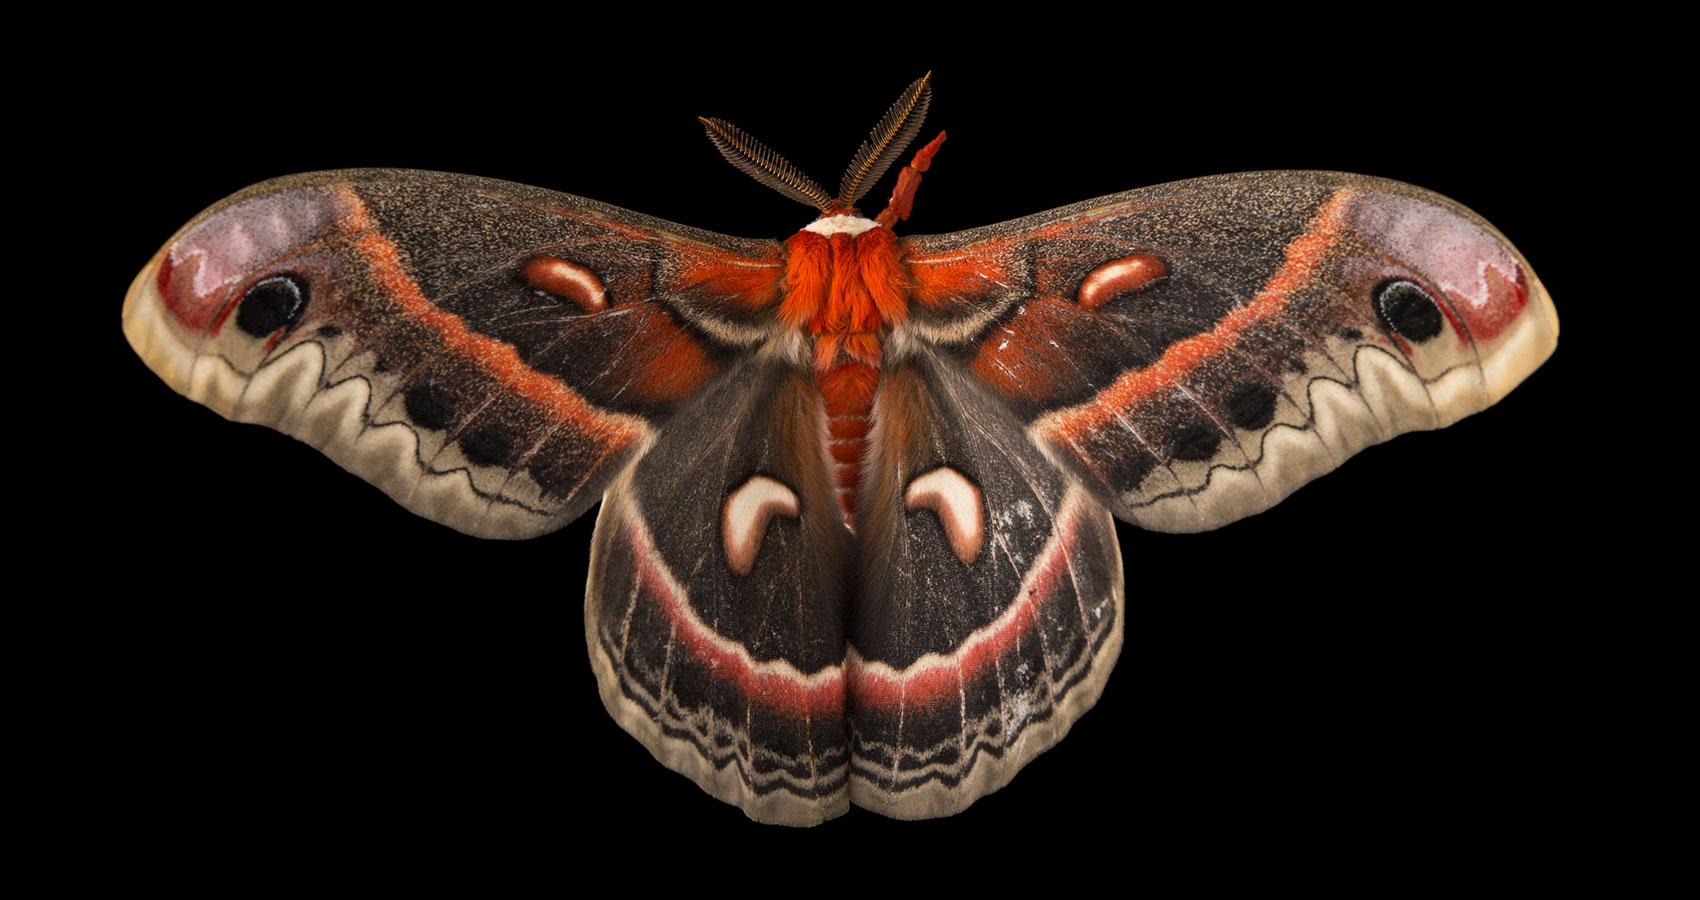 A Moth written by S. Thomas Summers at Spillwords.com